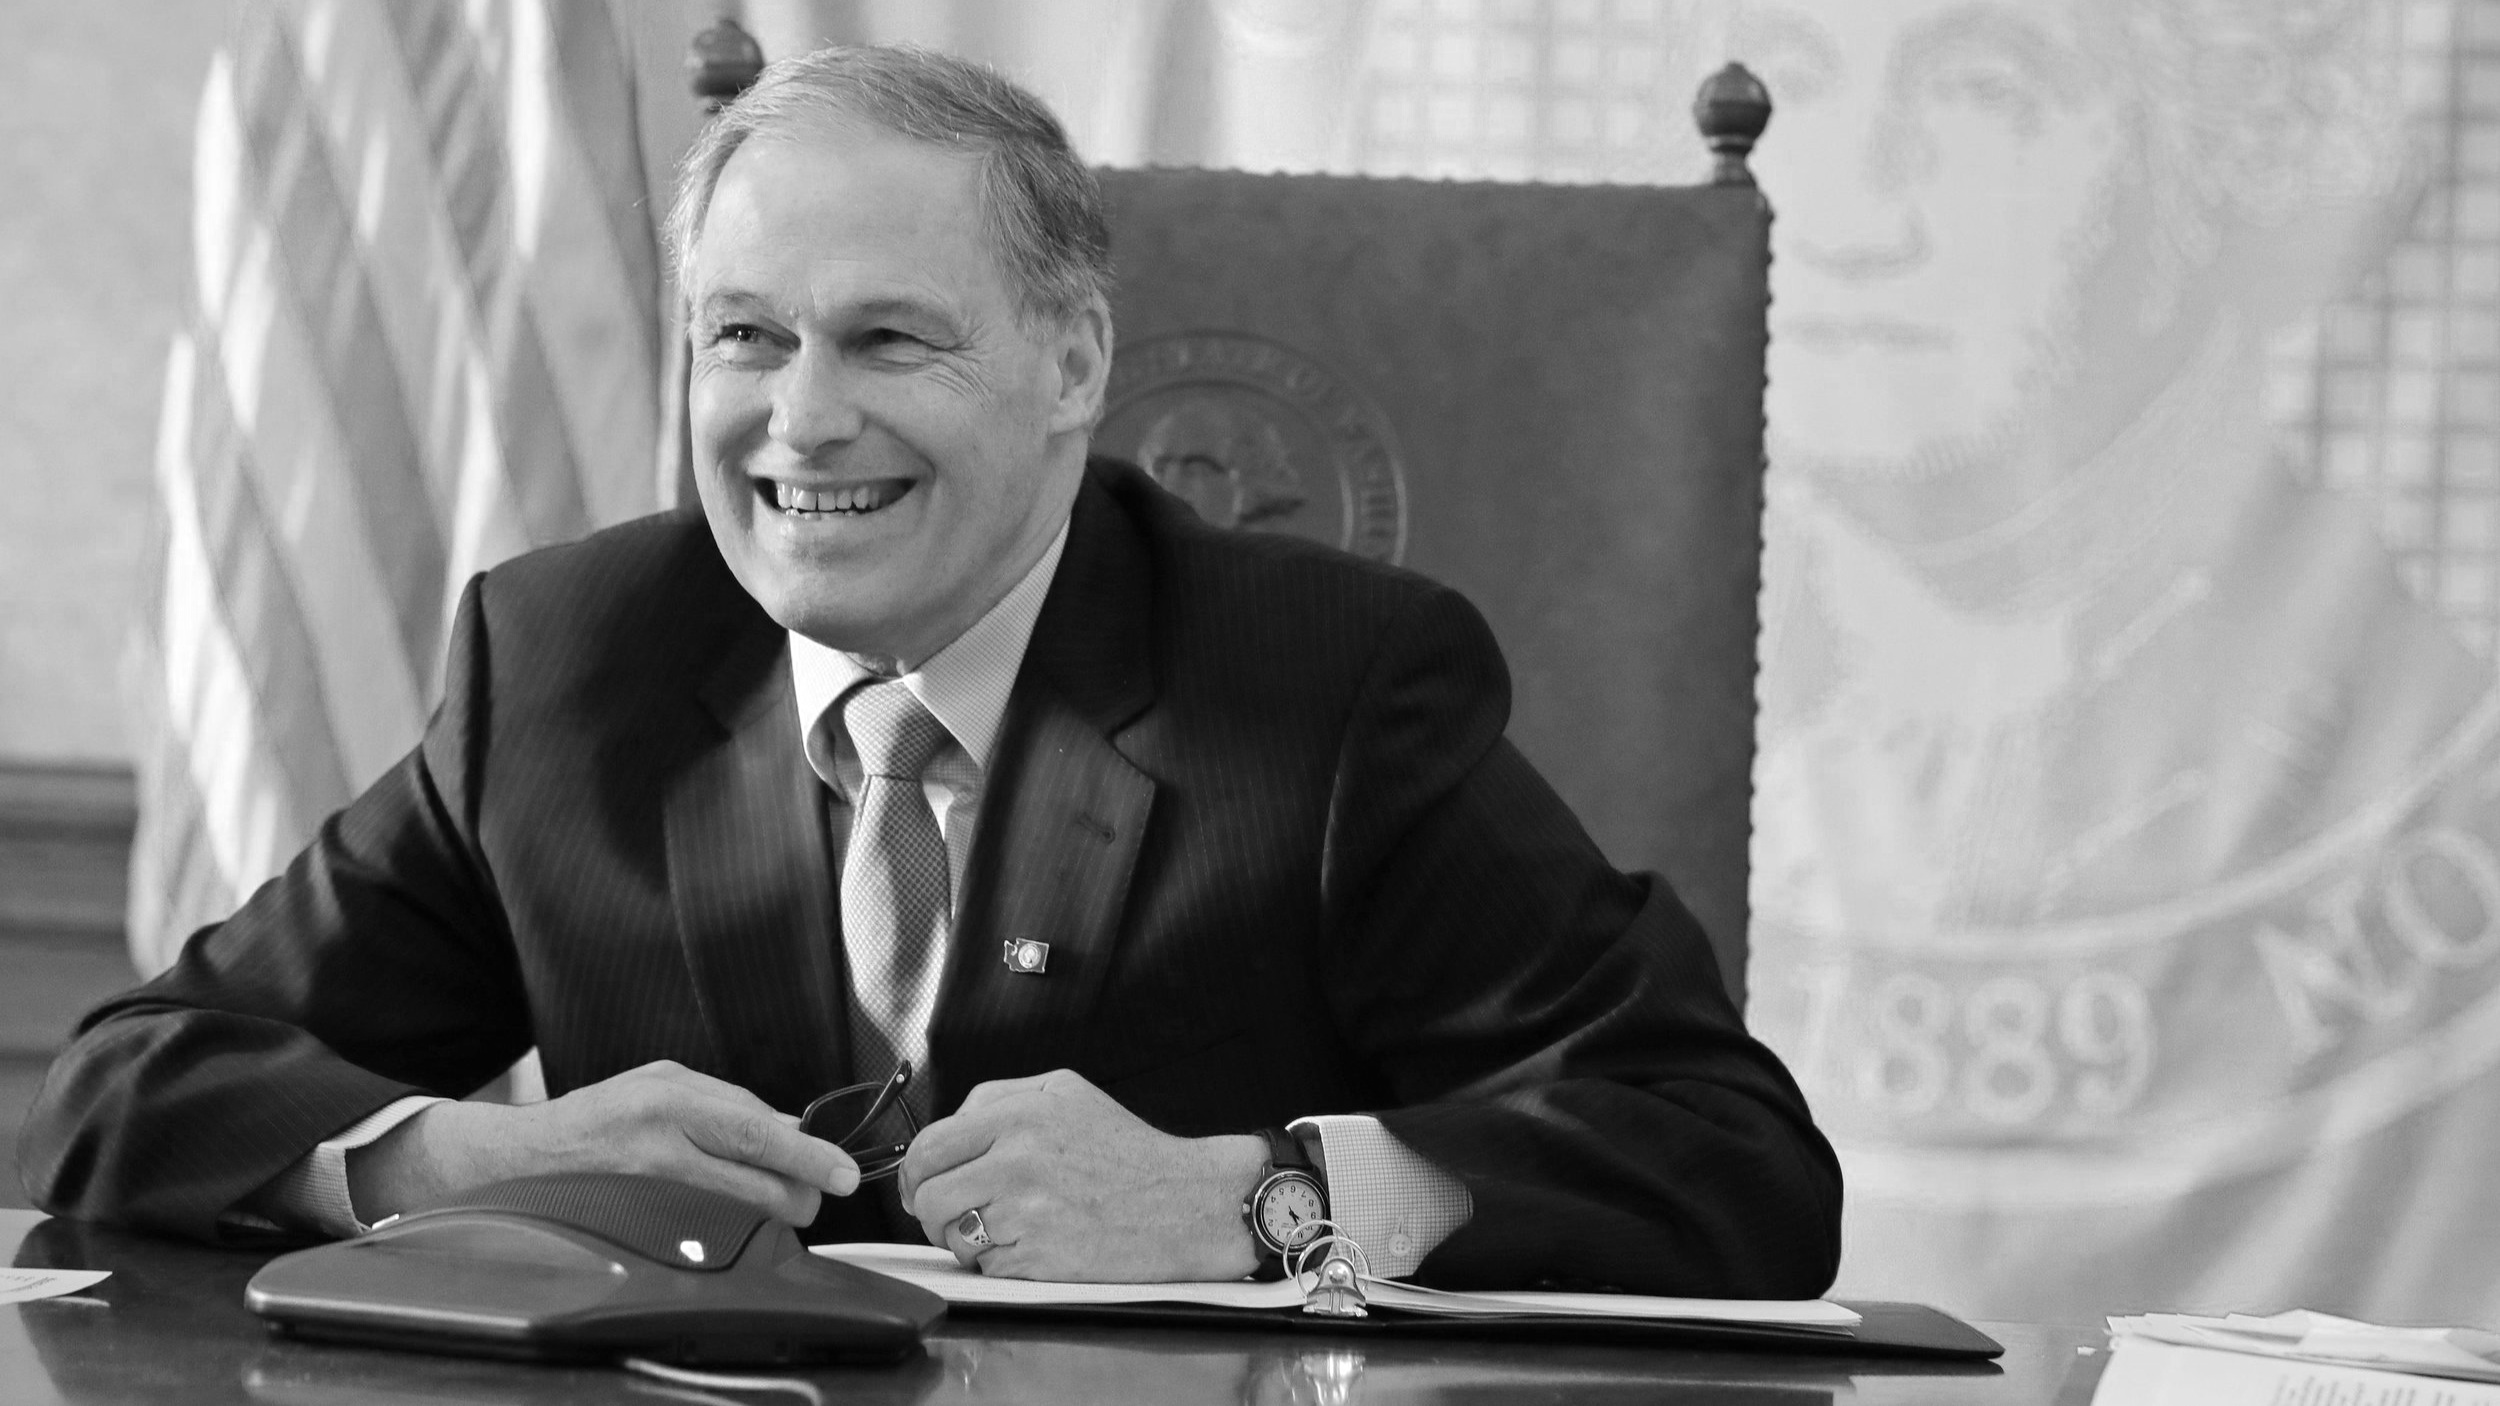 Governor Jay Inslee - Governor of Washington State, 2020 presidential candidate